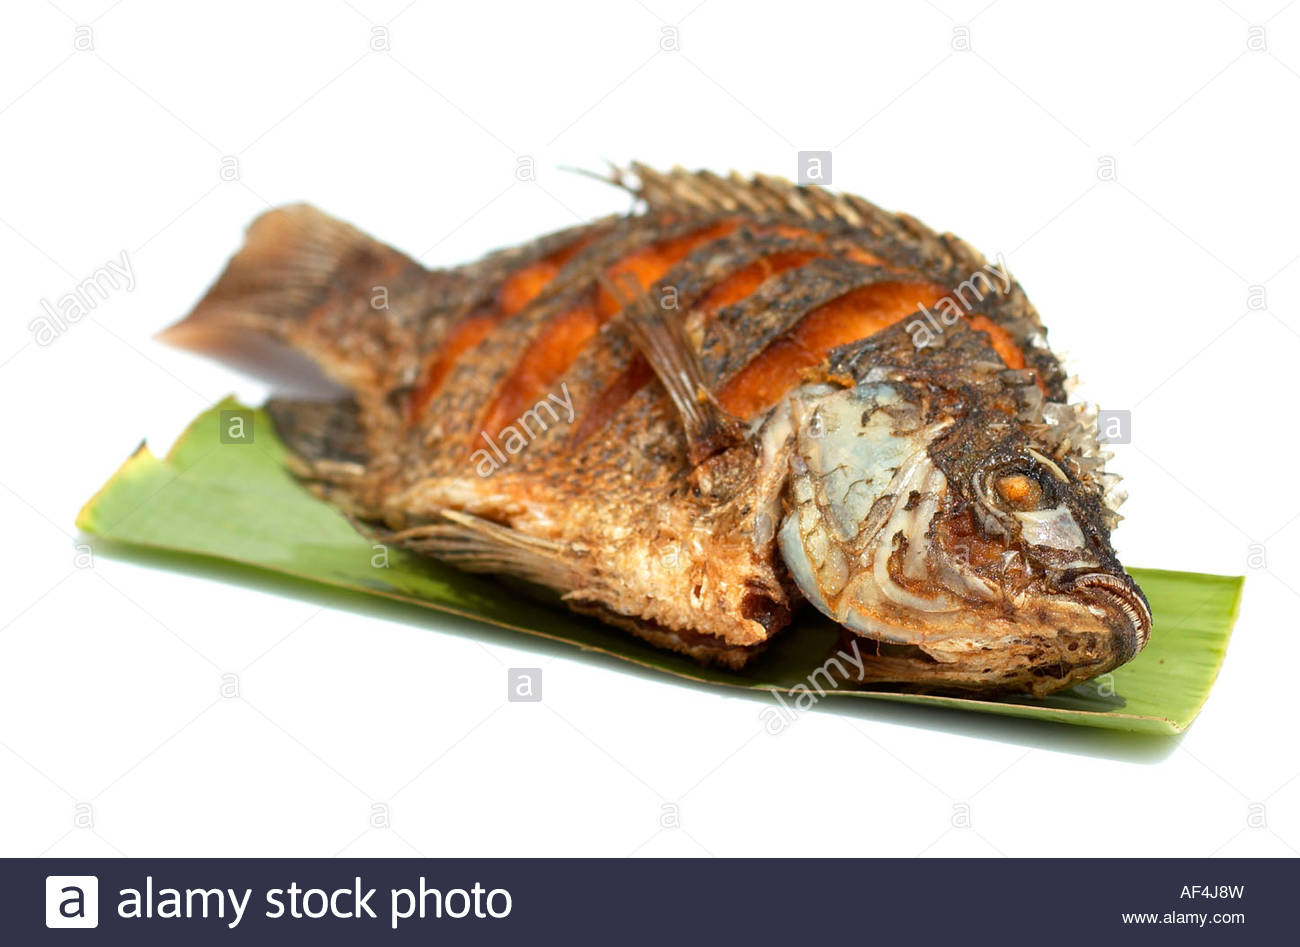 Deep Fried Tilapia Fish Stock Photo Royalty Free Image